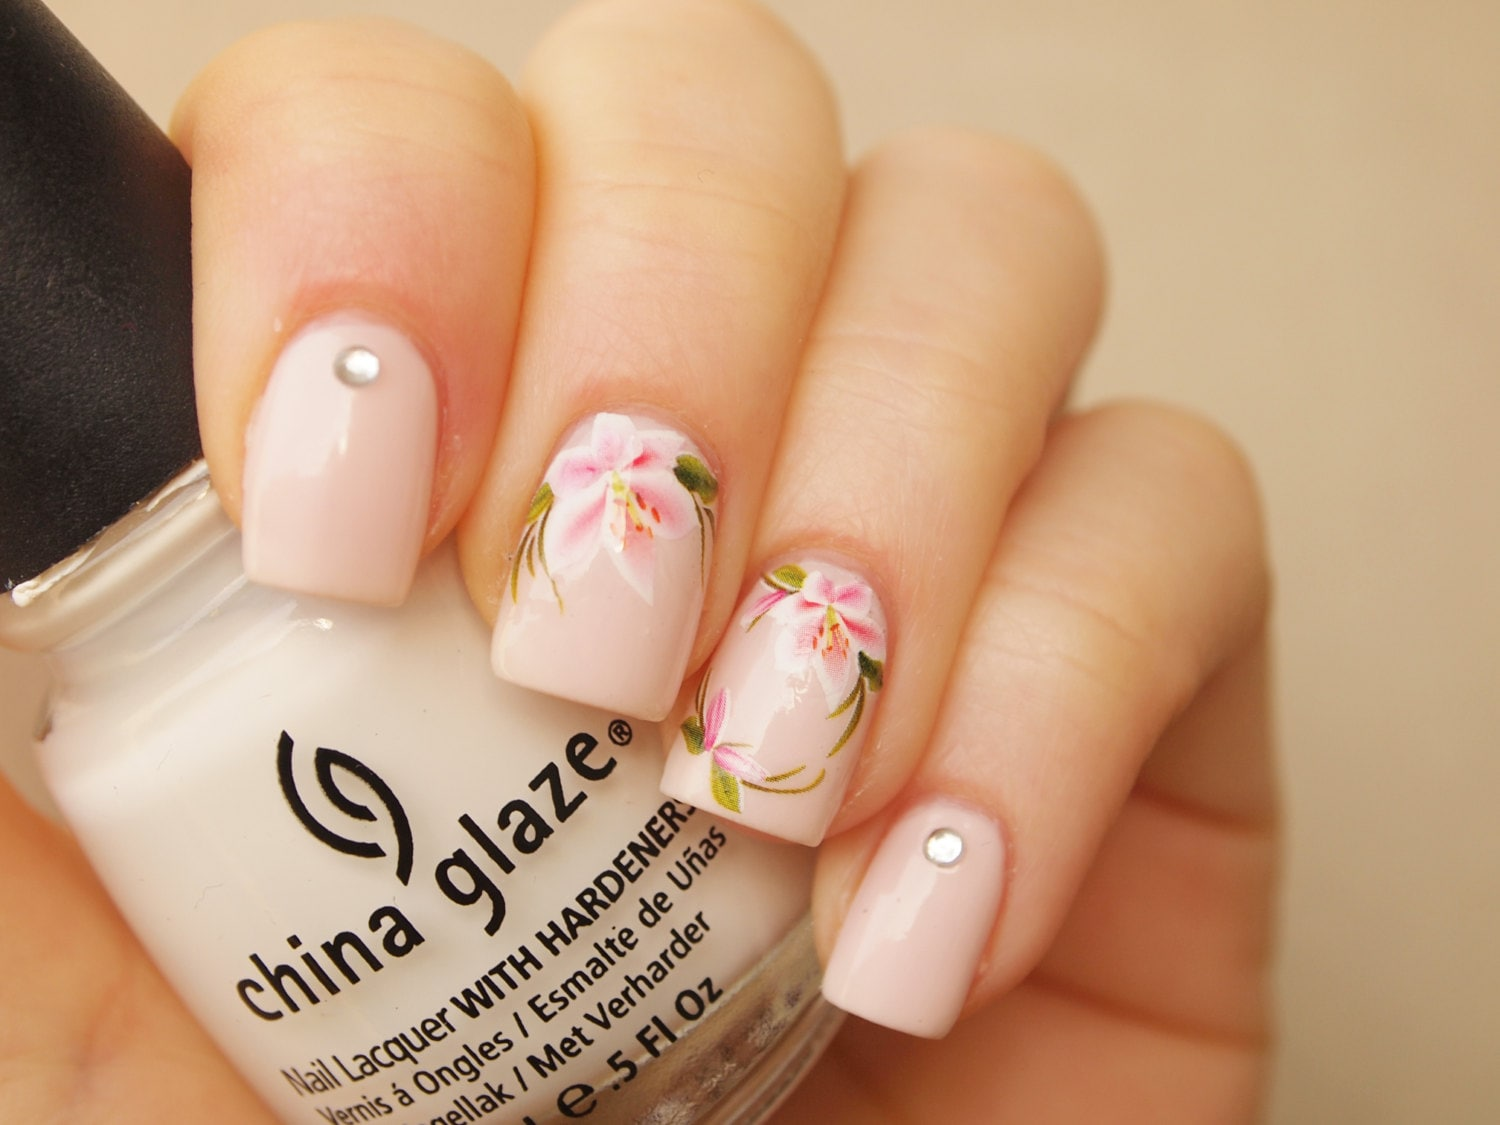 White pink lily nail art water decals/ 20pcs floral nail art